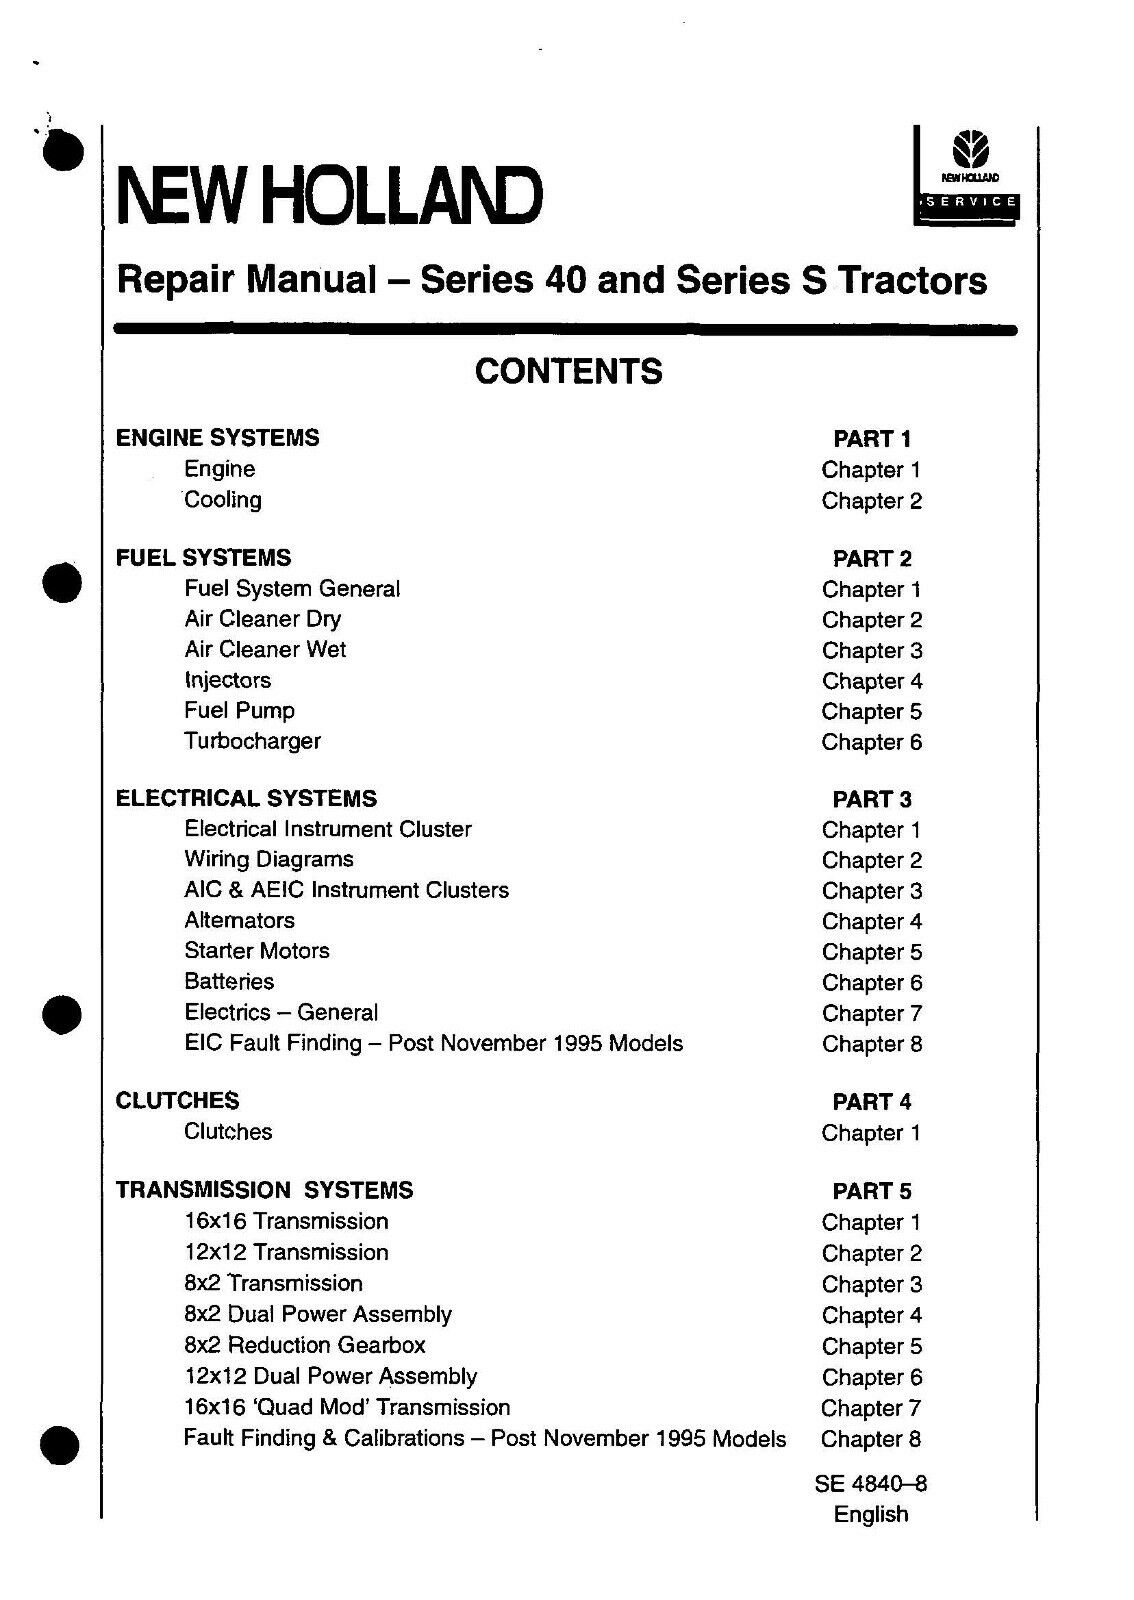 Ford 6640 Wiring Diagram Trusted Diagrams 3415 New Holland 40 5640 7740 7840 8240 8340 Repair Service 10 For 6 4 Wipers